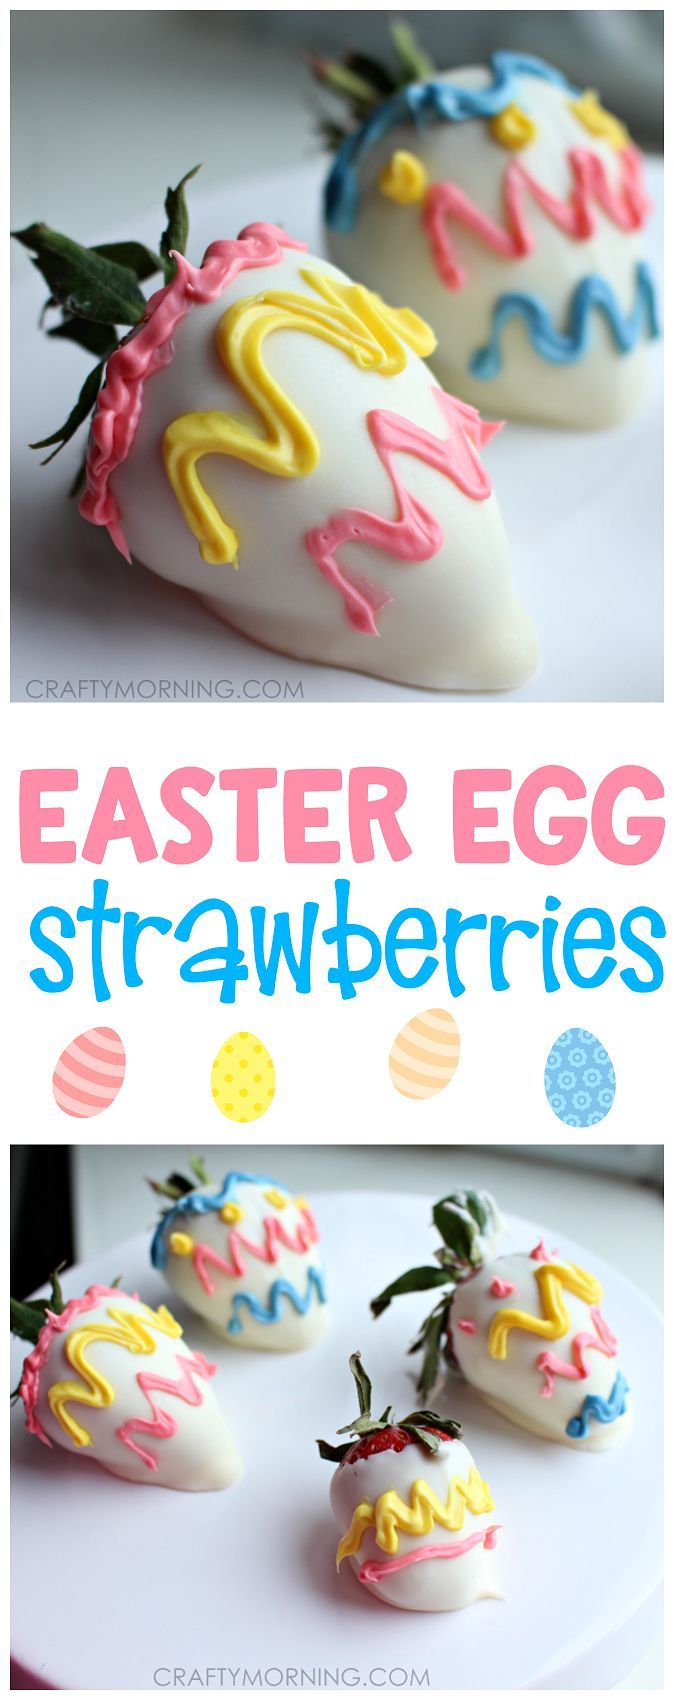 Easter egg strawberries are so cute for an easter dessert/appetizer on a platter! Healthy and adorable for kids.